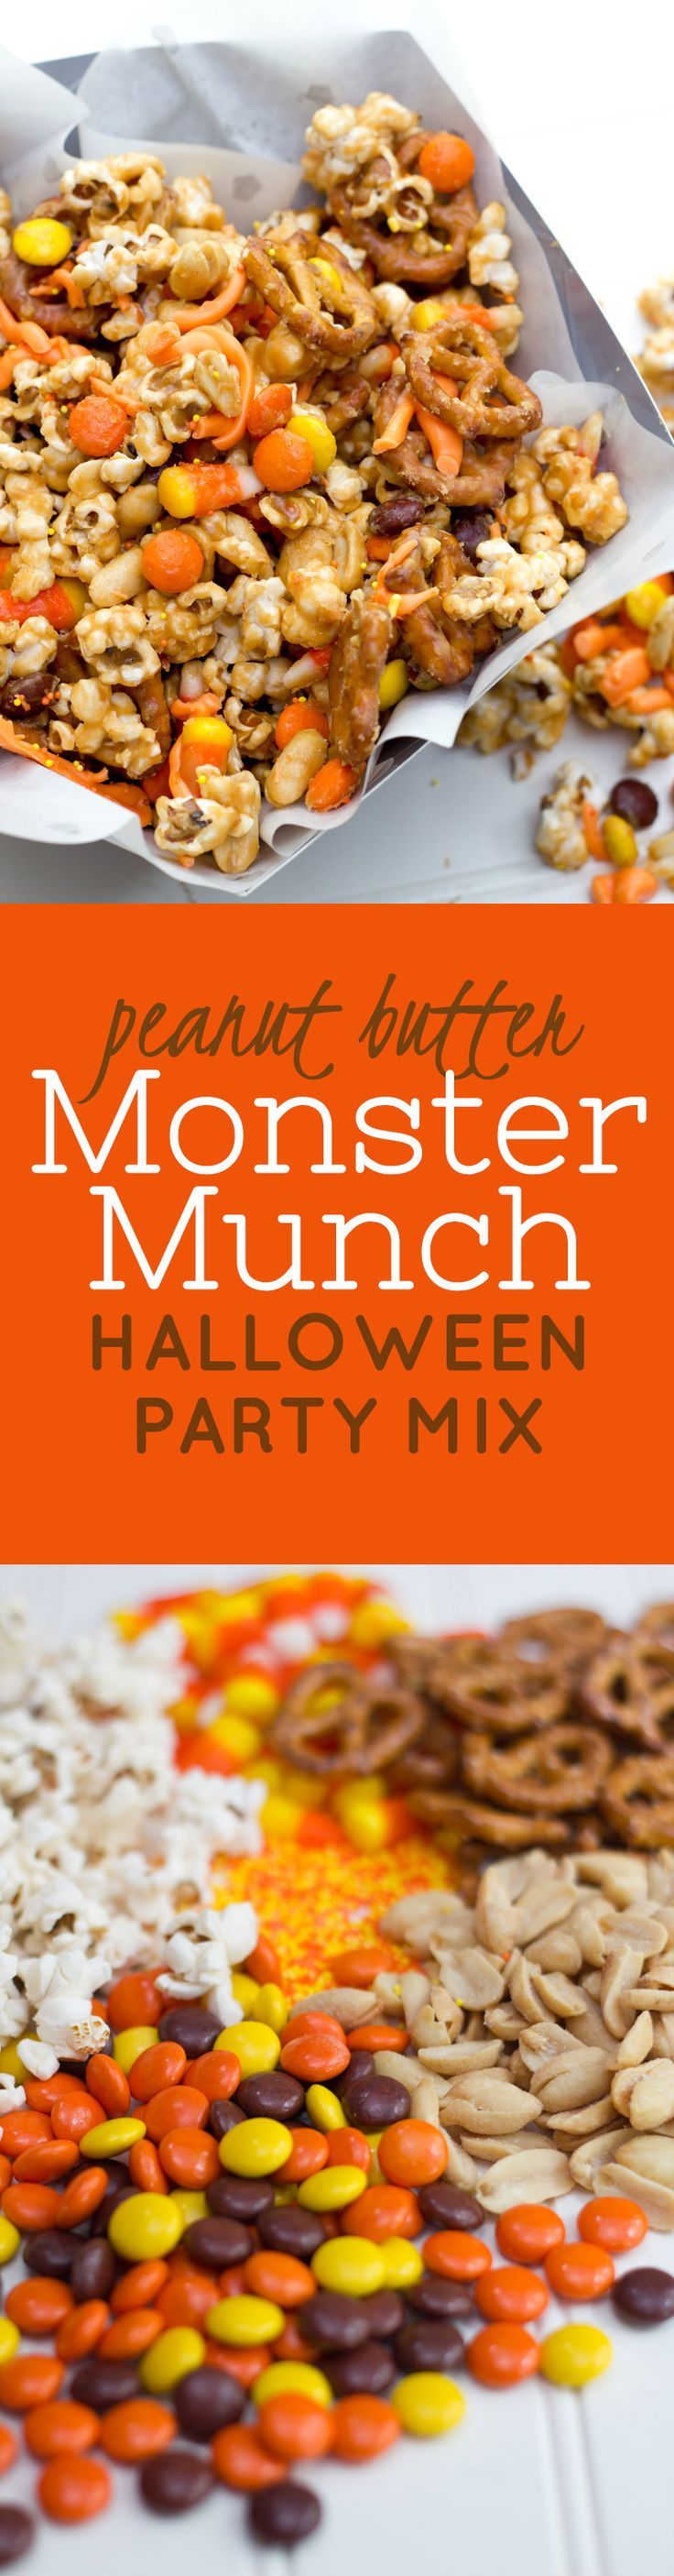 Peanut Butter Monster Munch Halloween Party Mix. Click through for this perfect fall, Halloween, or Thanksgiving snack or appetizer recipe. Back To Her Roots